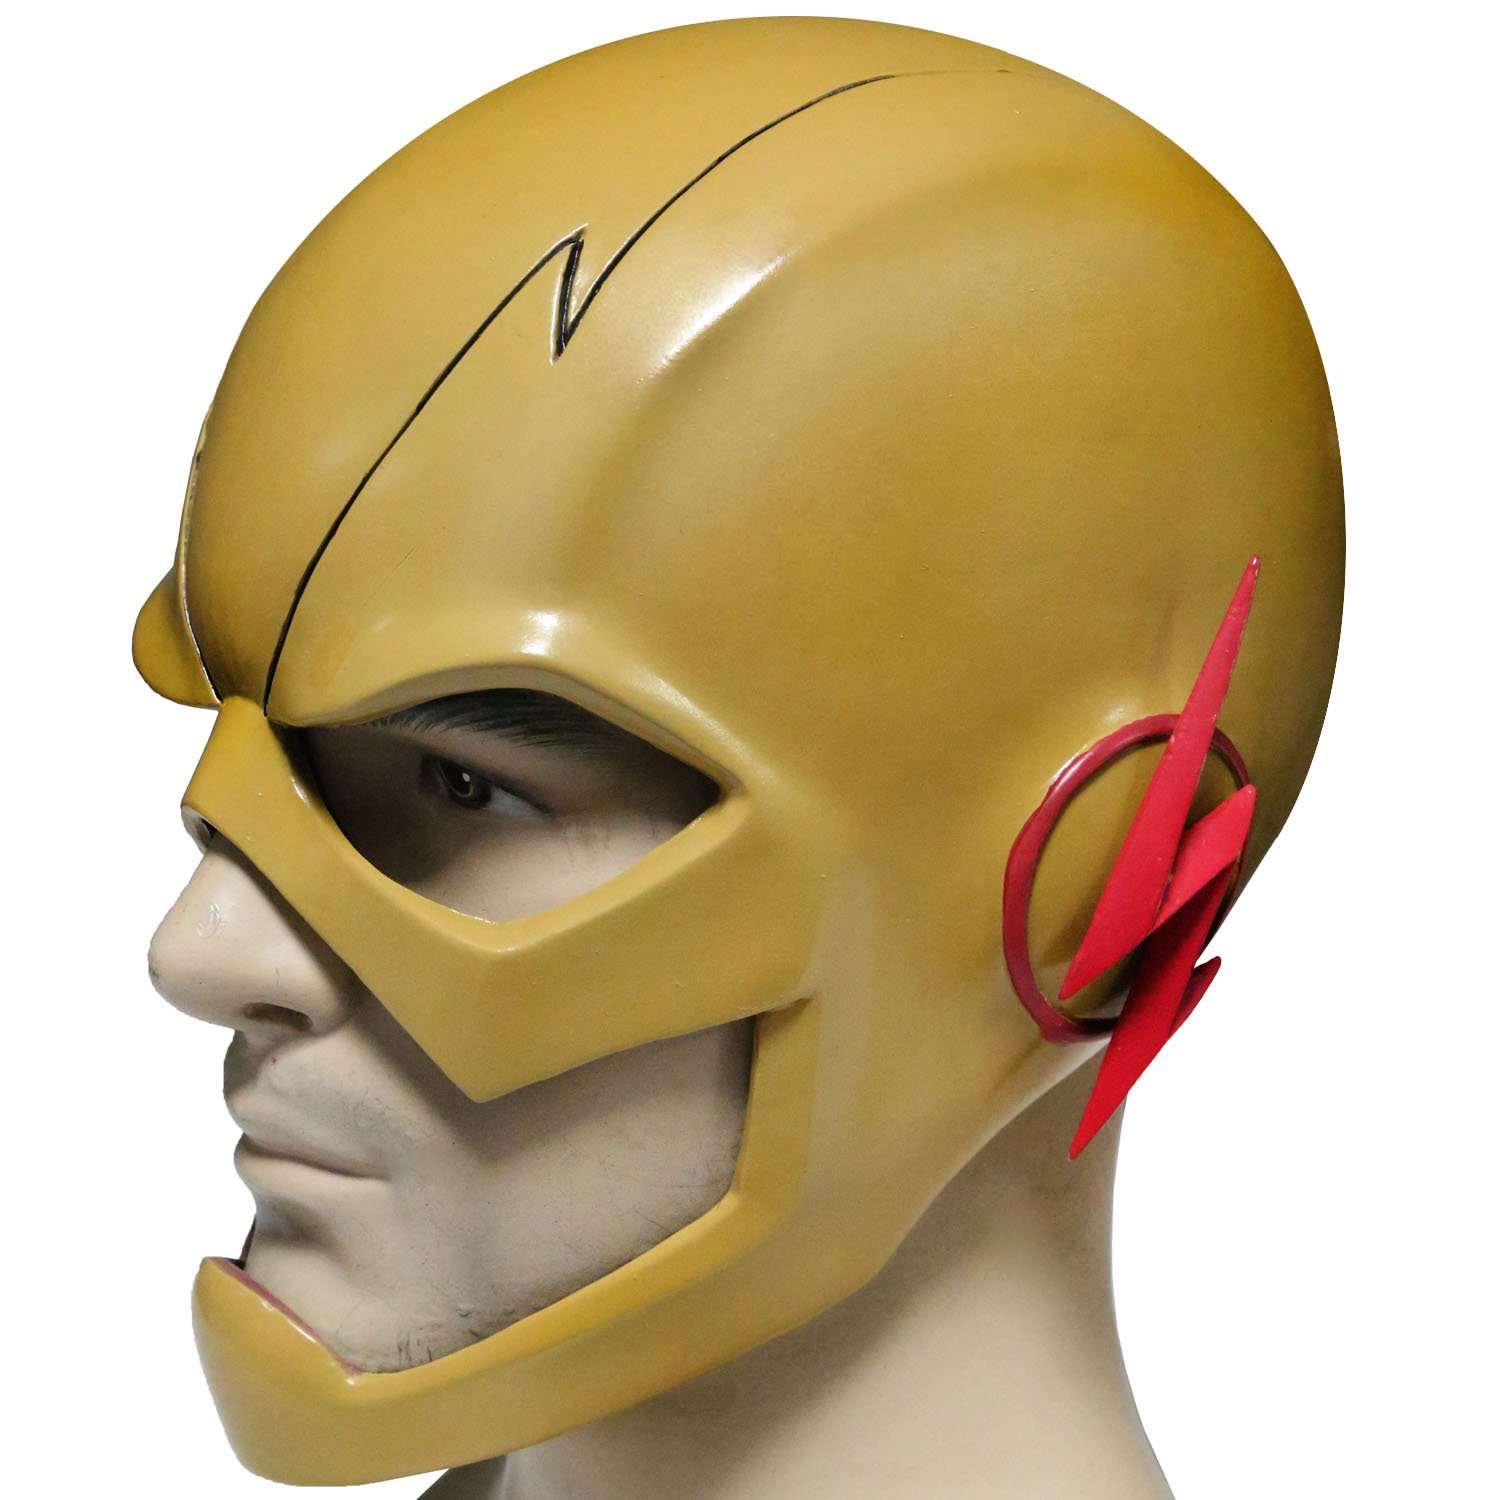 XCOSER Reverse Flash Mask Helmet Props for Adult Halloween Costume PVC Fancy Amazon.ca Clothing u0026 Accessories  sc 1 st  Amazon.ca & XCOSER Reverse Flash Mask Helmet Props for Adult Halloween Costume ...